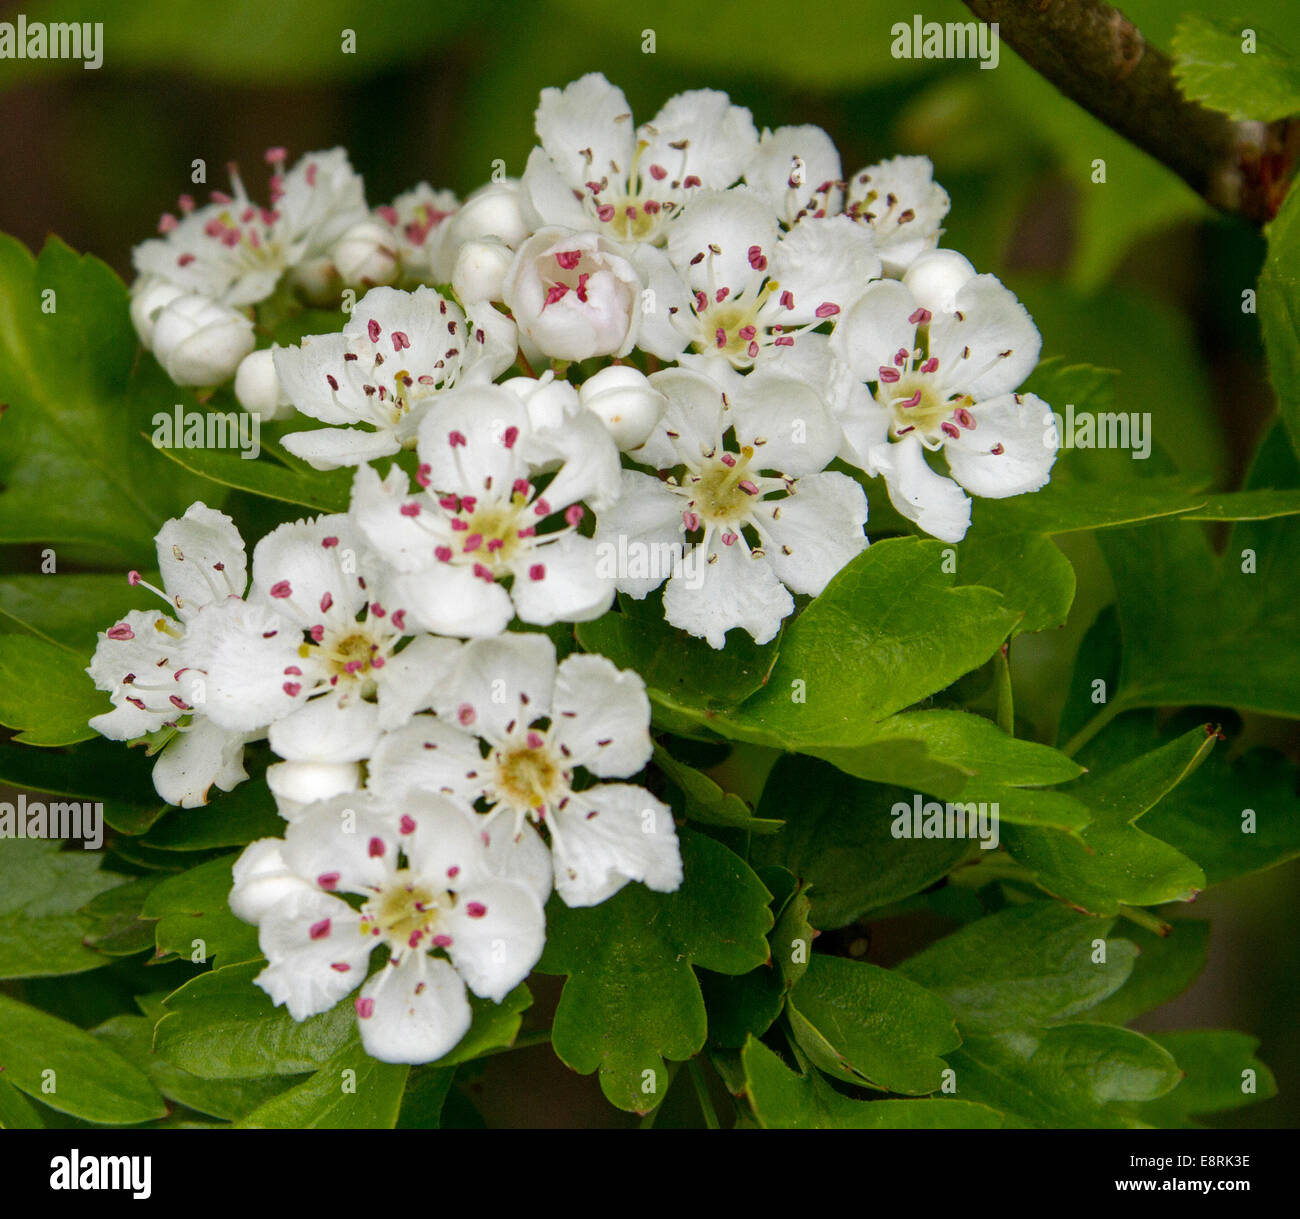 Cluster of perfumed white flowers and emerald leaves of common stock cluster of perfumed white flowers and emerald leaves of common hawthorn crataegus monogyna may tree in english hedgerow mightylinksfo Choice Image